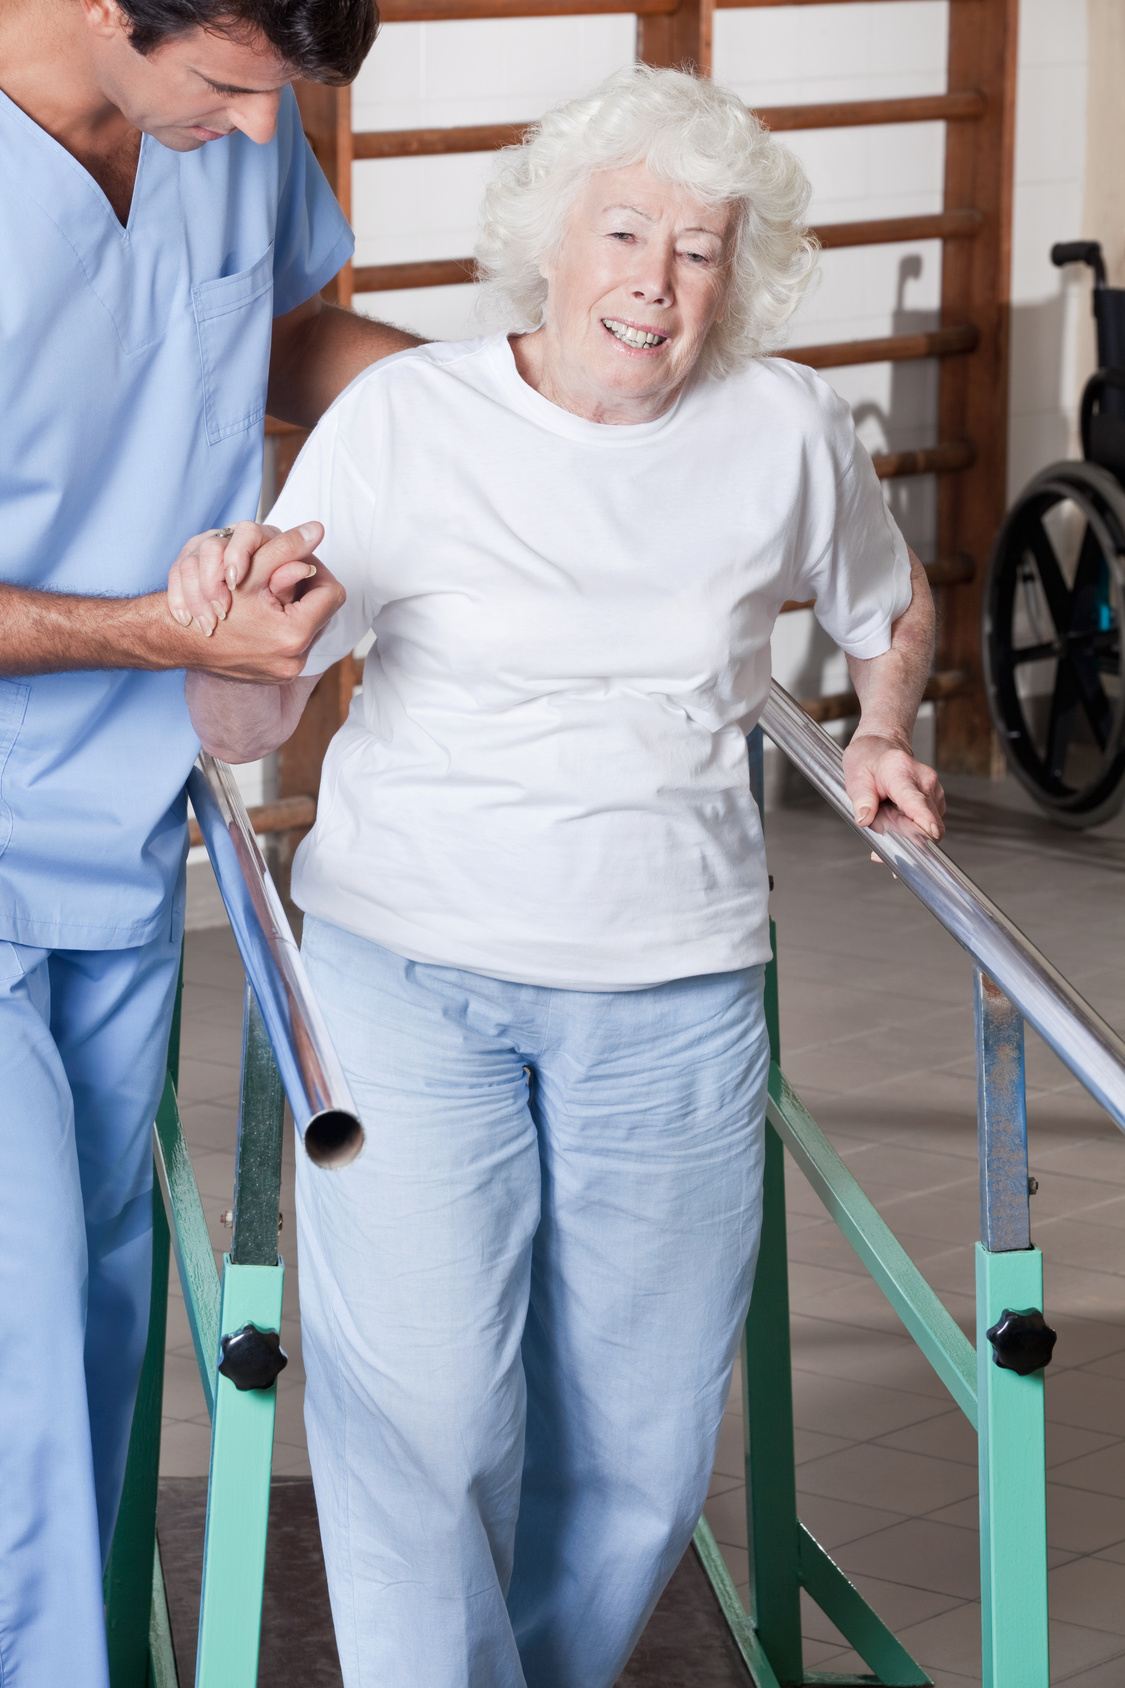 BALANCE WITH SENIOR IN ASSISTED LIVING FACILITY.jpg